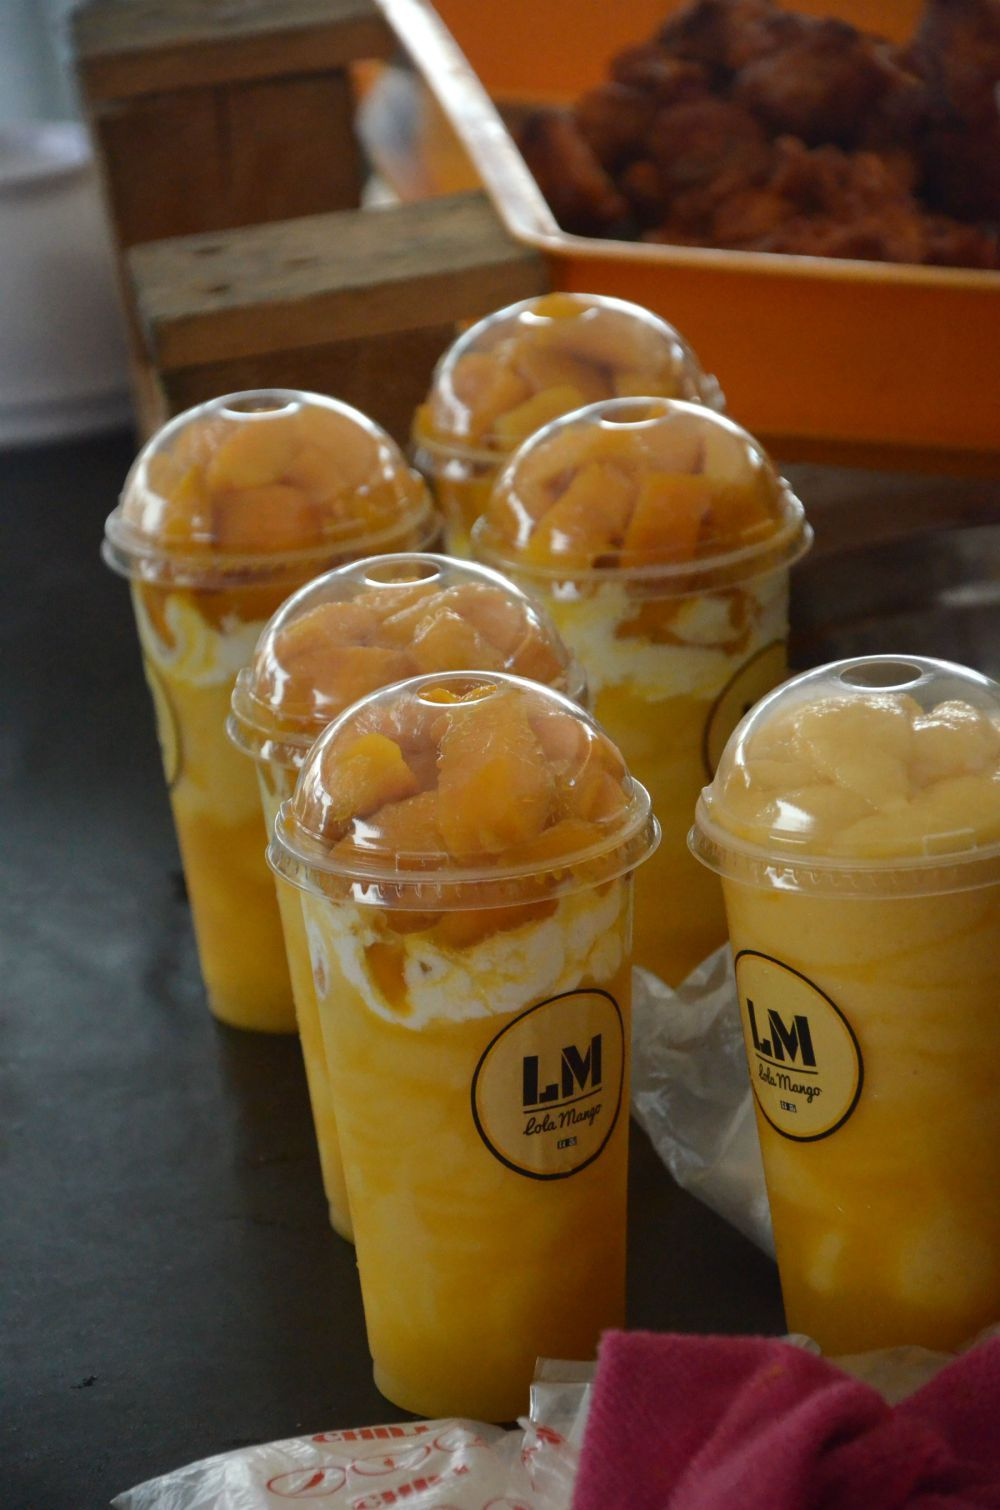 Mango Smoothies By Lola Mango Near Gm Klang Mango Smoothie Food Best Street Food